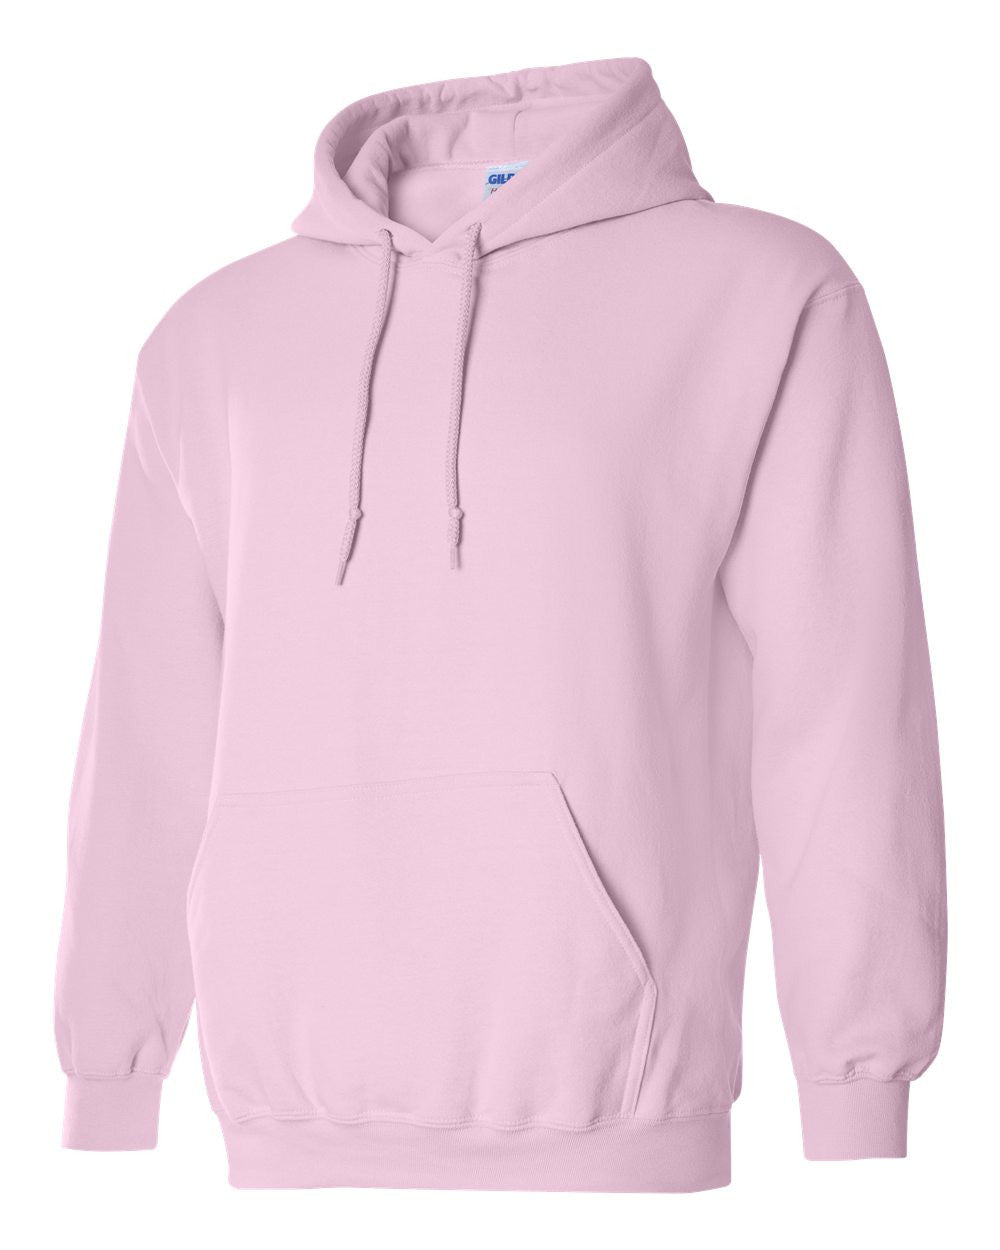 Hoodies from Gildan in over 30 colors - Discountedrack.com